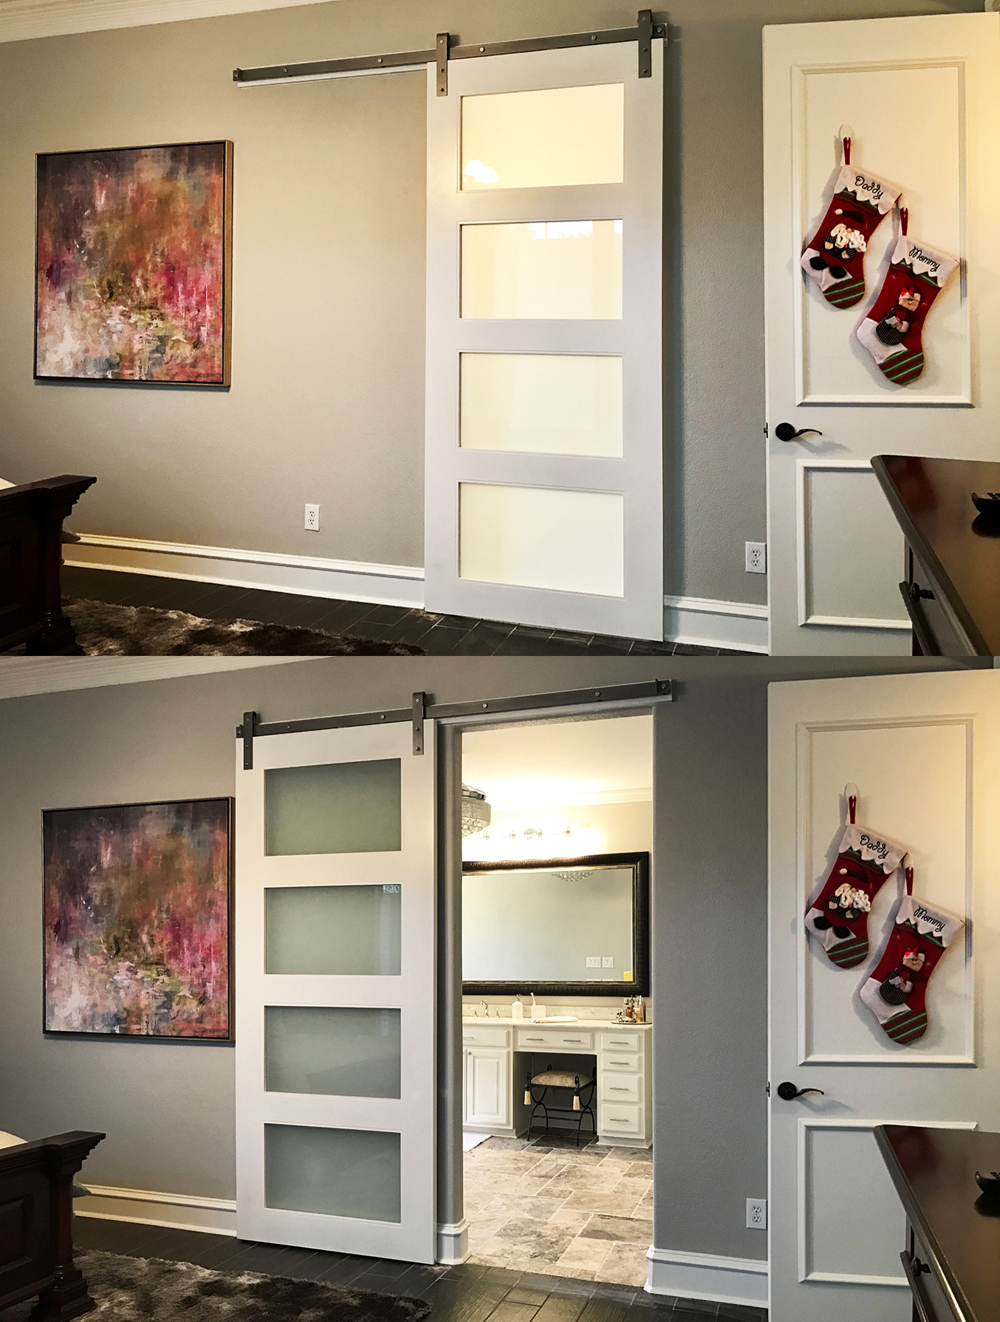 Blog Archive 3 Things To Know Before Installing A Barn Door Dallas